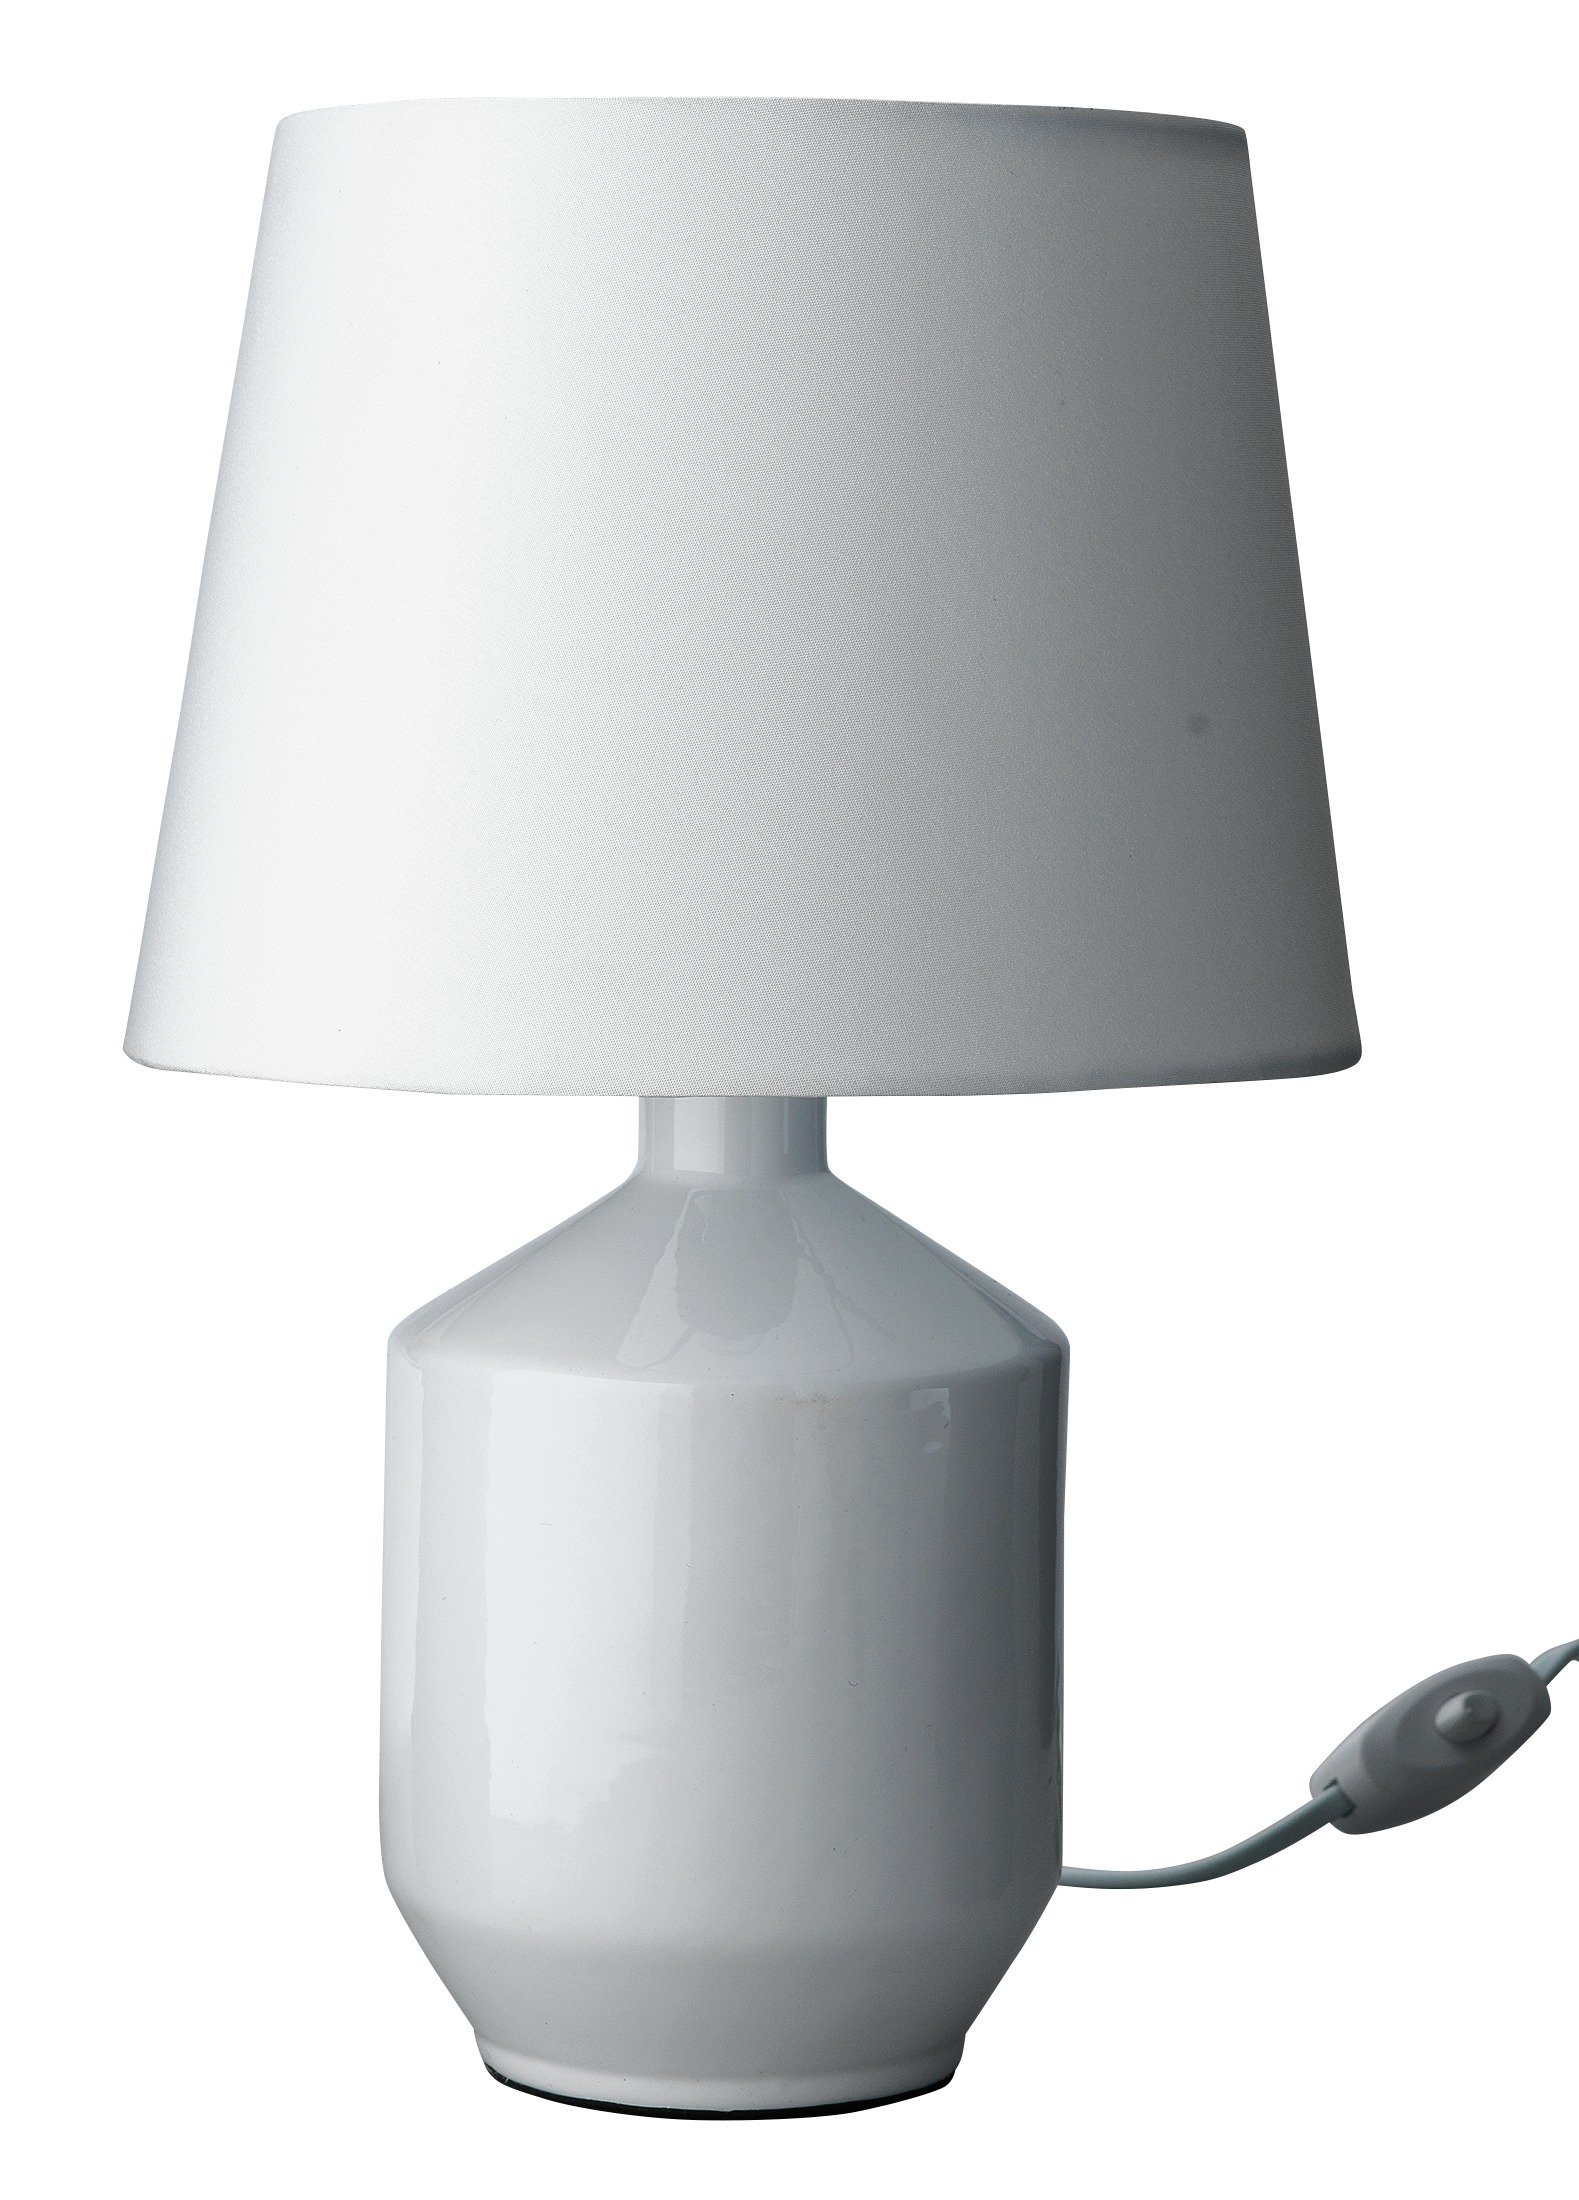 Image of ColourMatch Ceramic Table Lamp - Super White